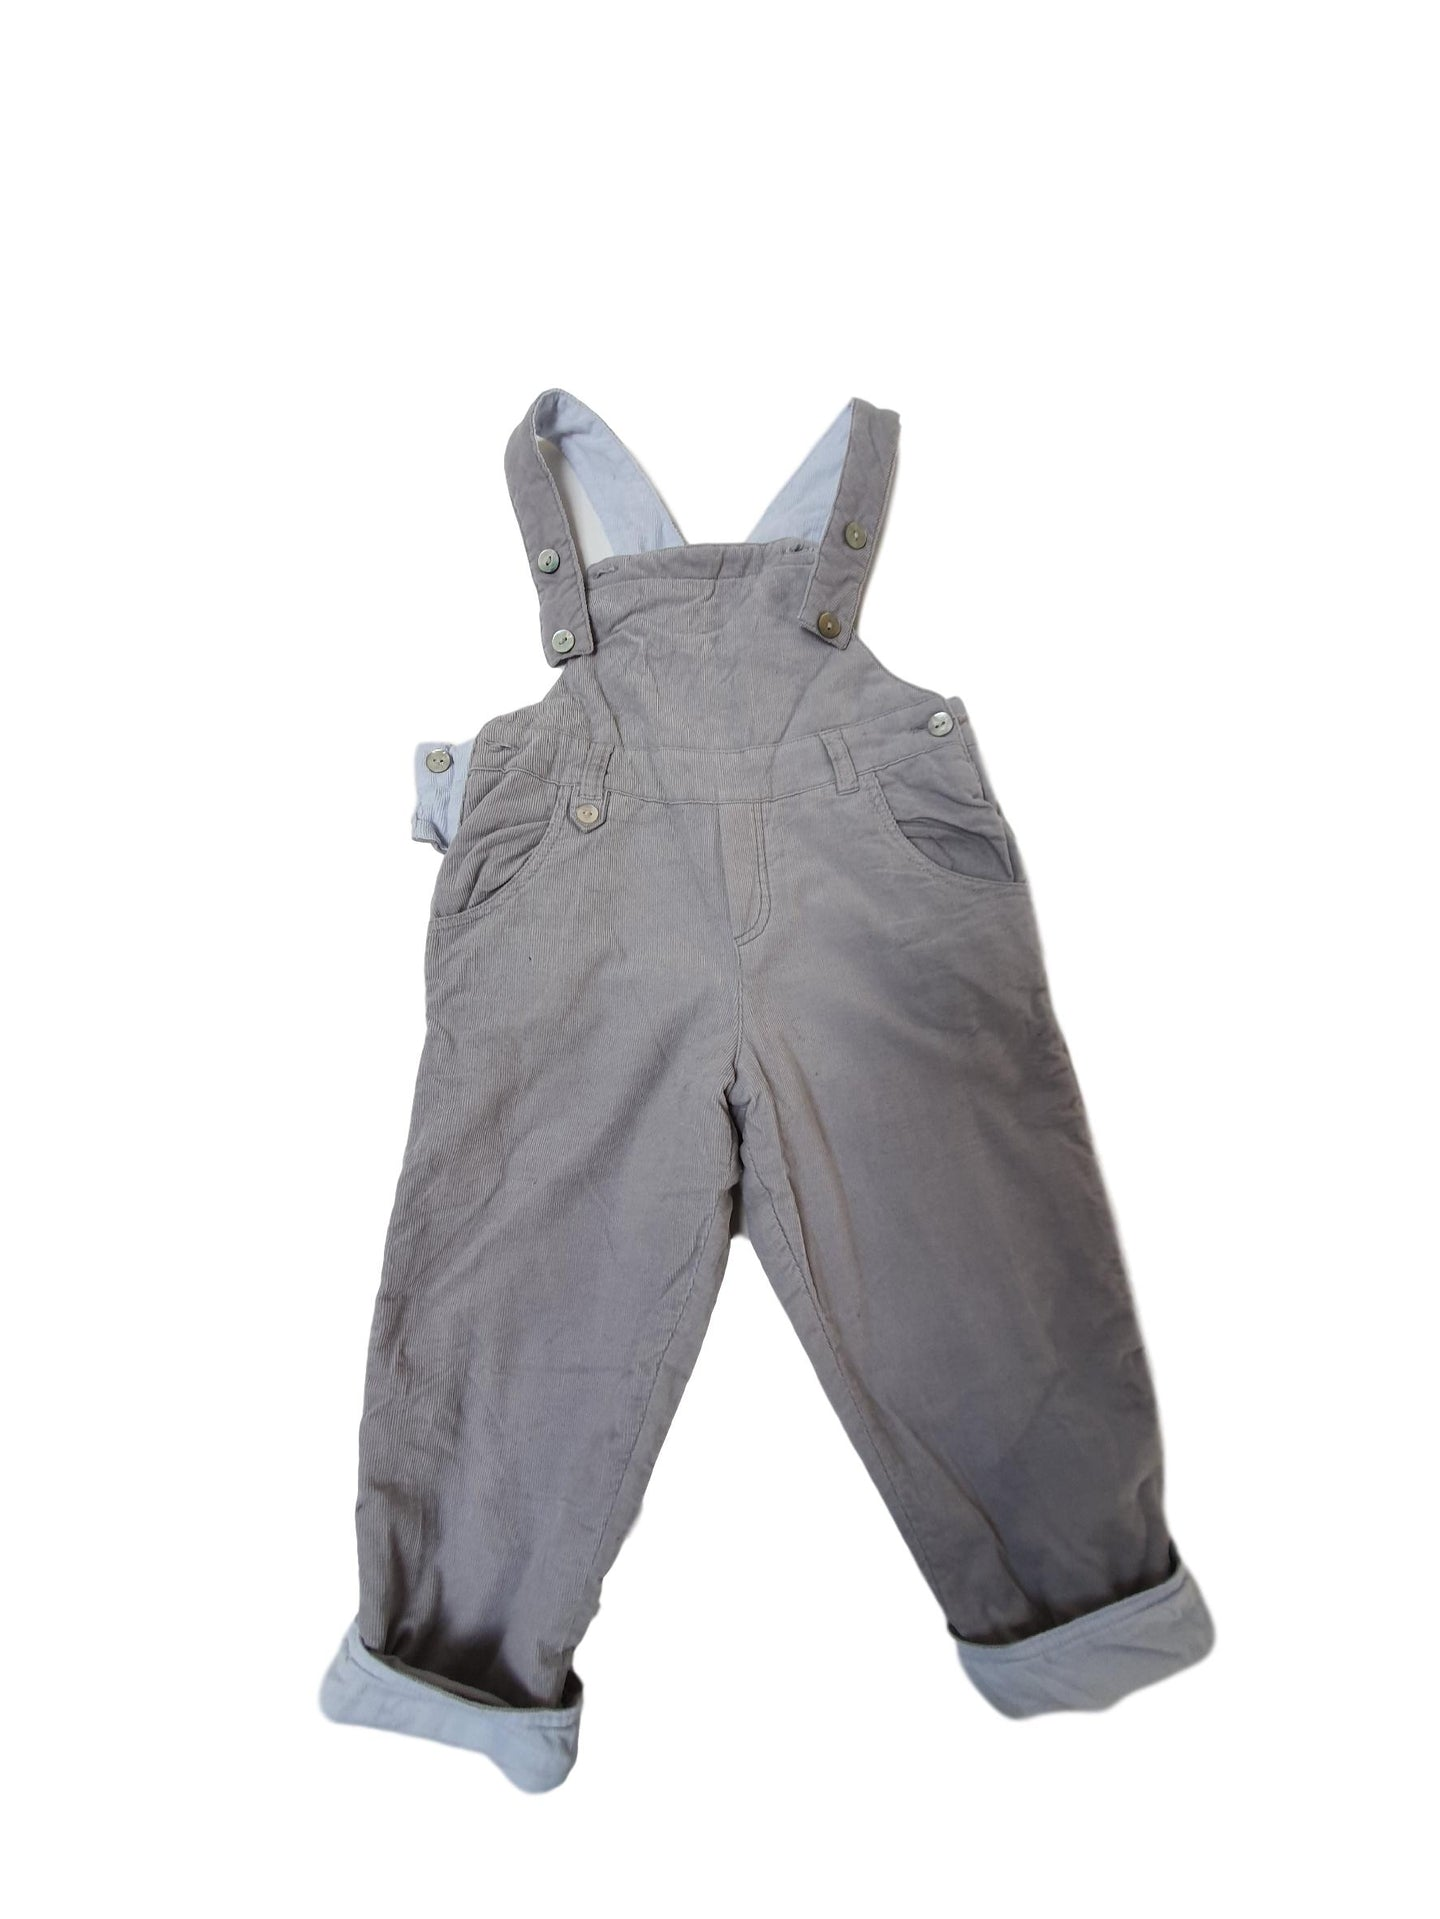 TARTINE ET CHOCOLAT boy or girl dungaree 2yo